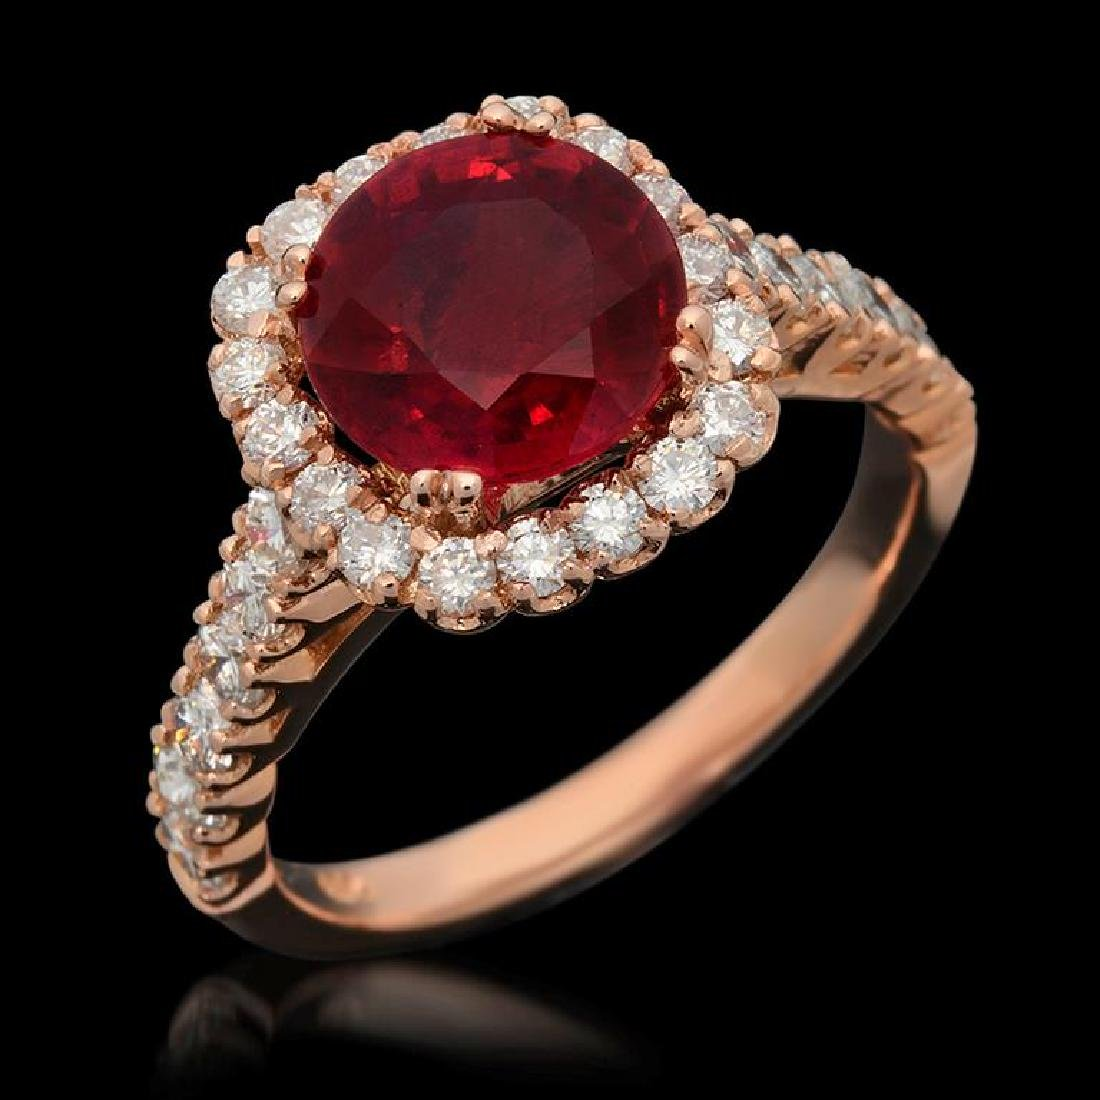 14K Gold 3.28ct Ruby 1.26ct Diamond Ring